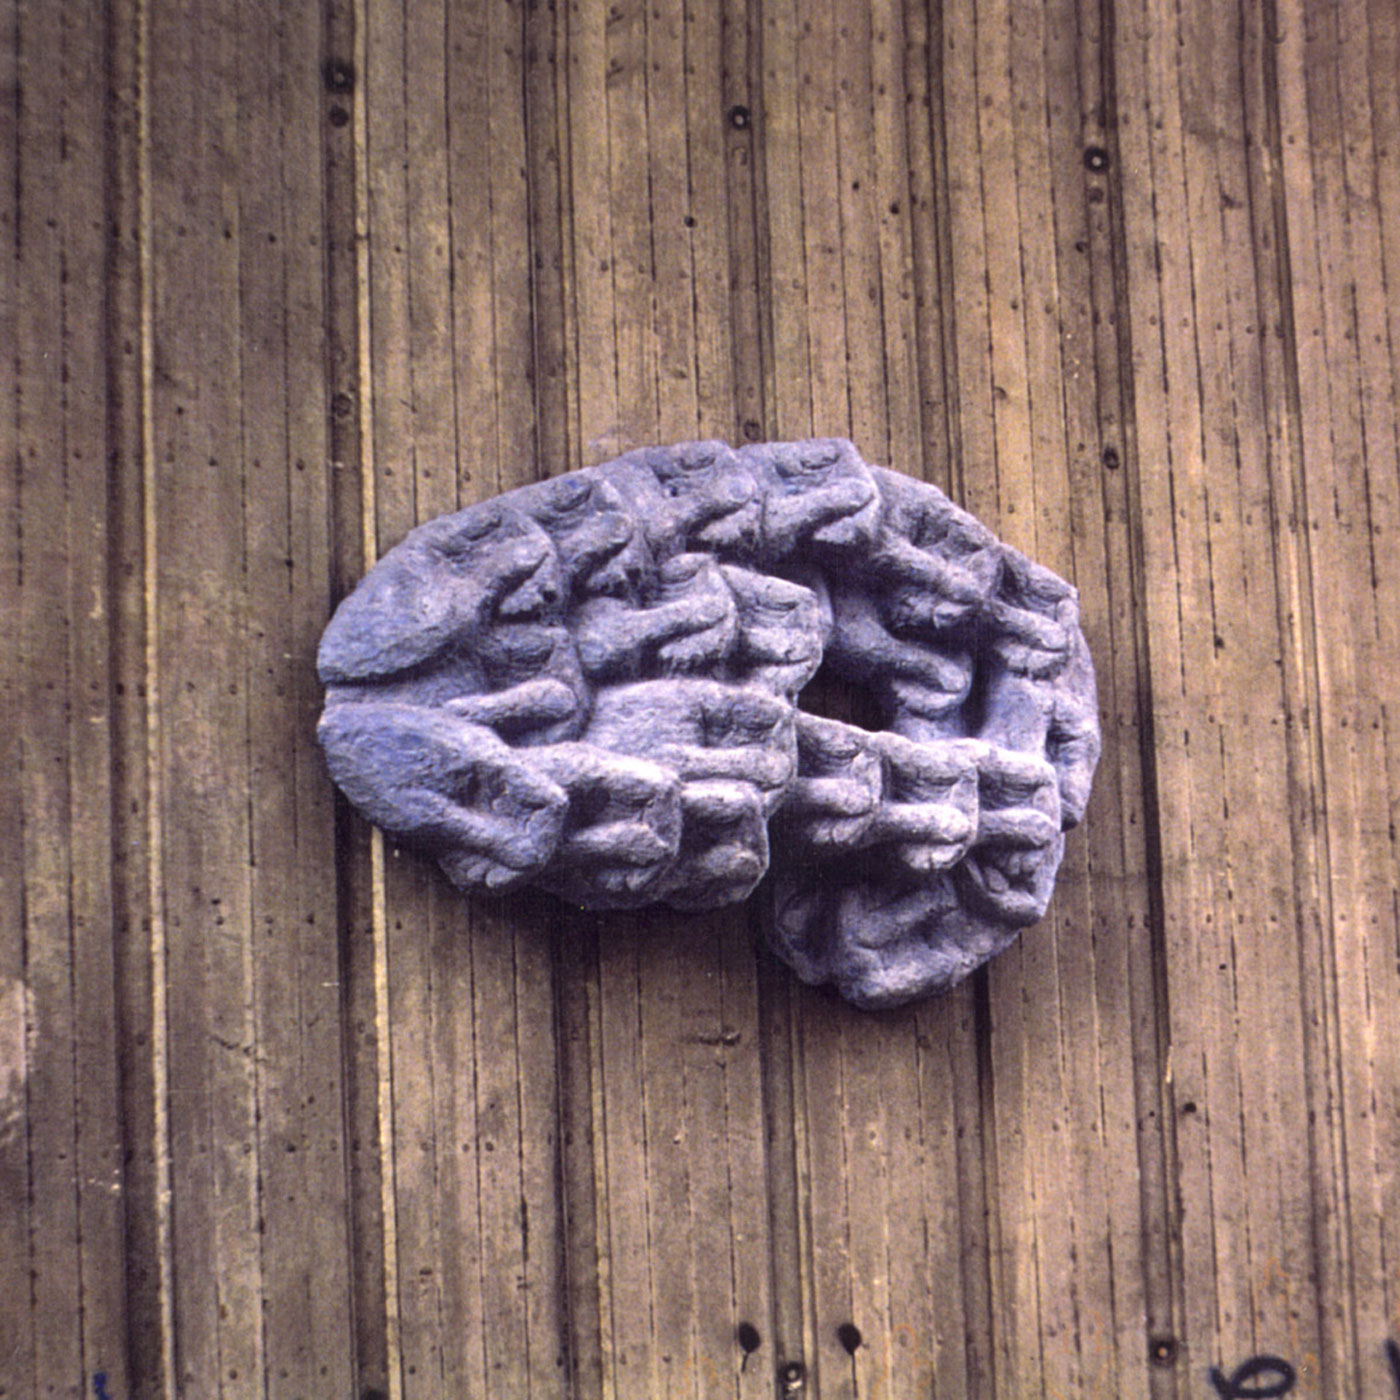 BLUE HAND,  © 1991,  concrete, pigments, modeled in clay, cast in pigmented concrete, 200 x 120 x 25 cm